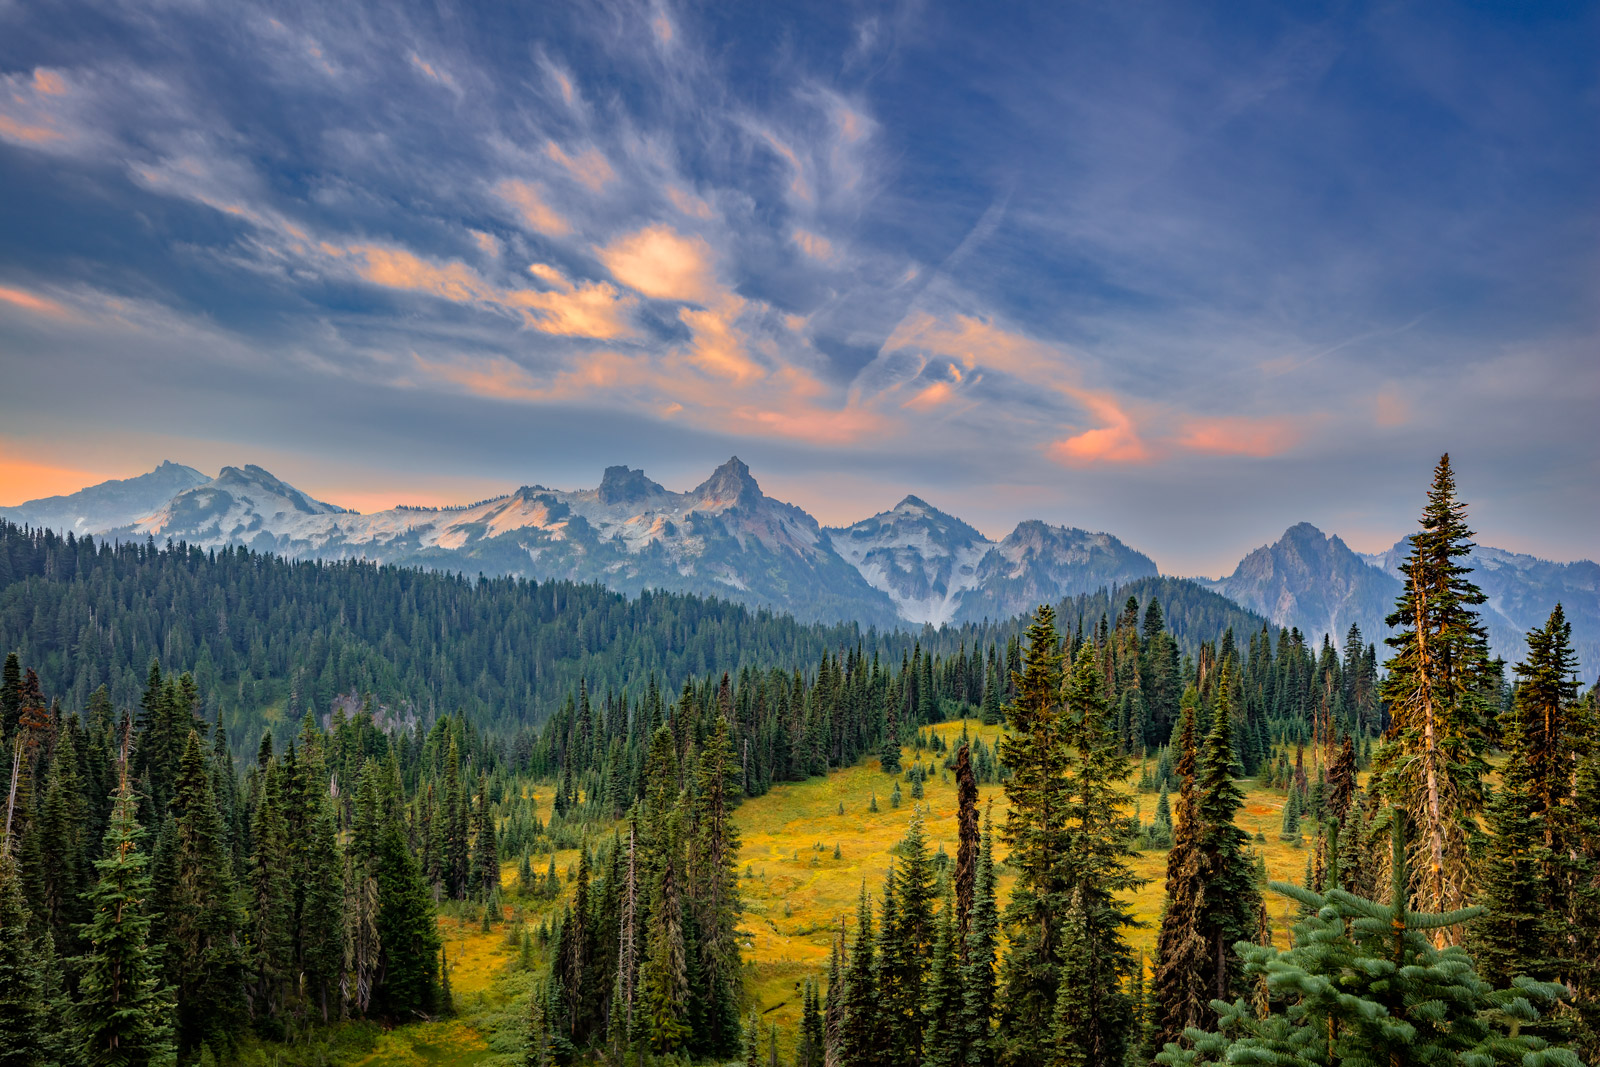 A Limited Edition, Fine Art photograph of a cool sunrise over the mountains of the Tatoosh Range at Mount Rainier National Park...